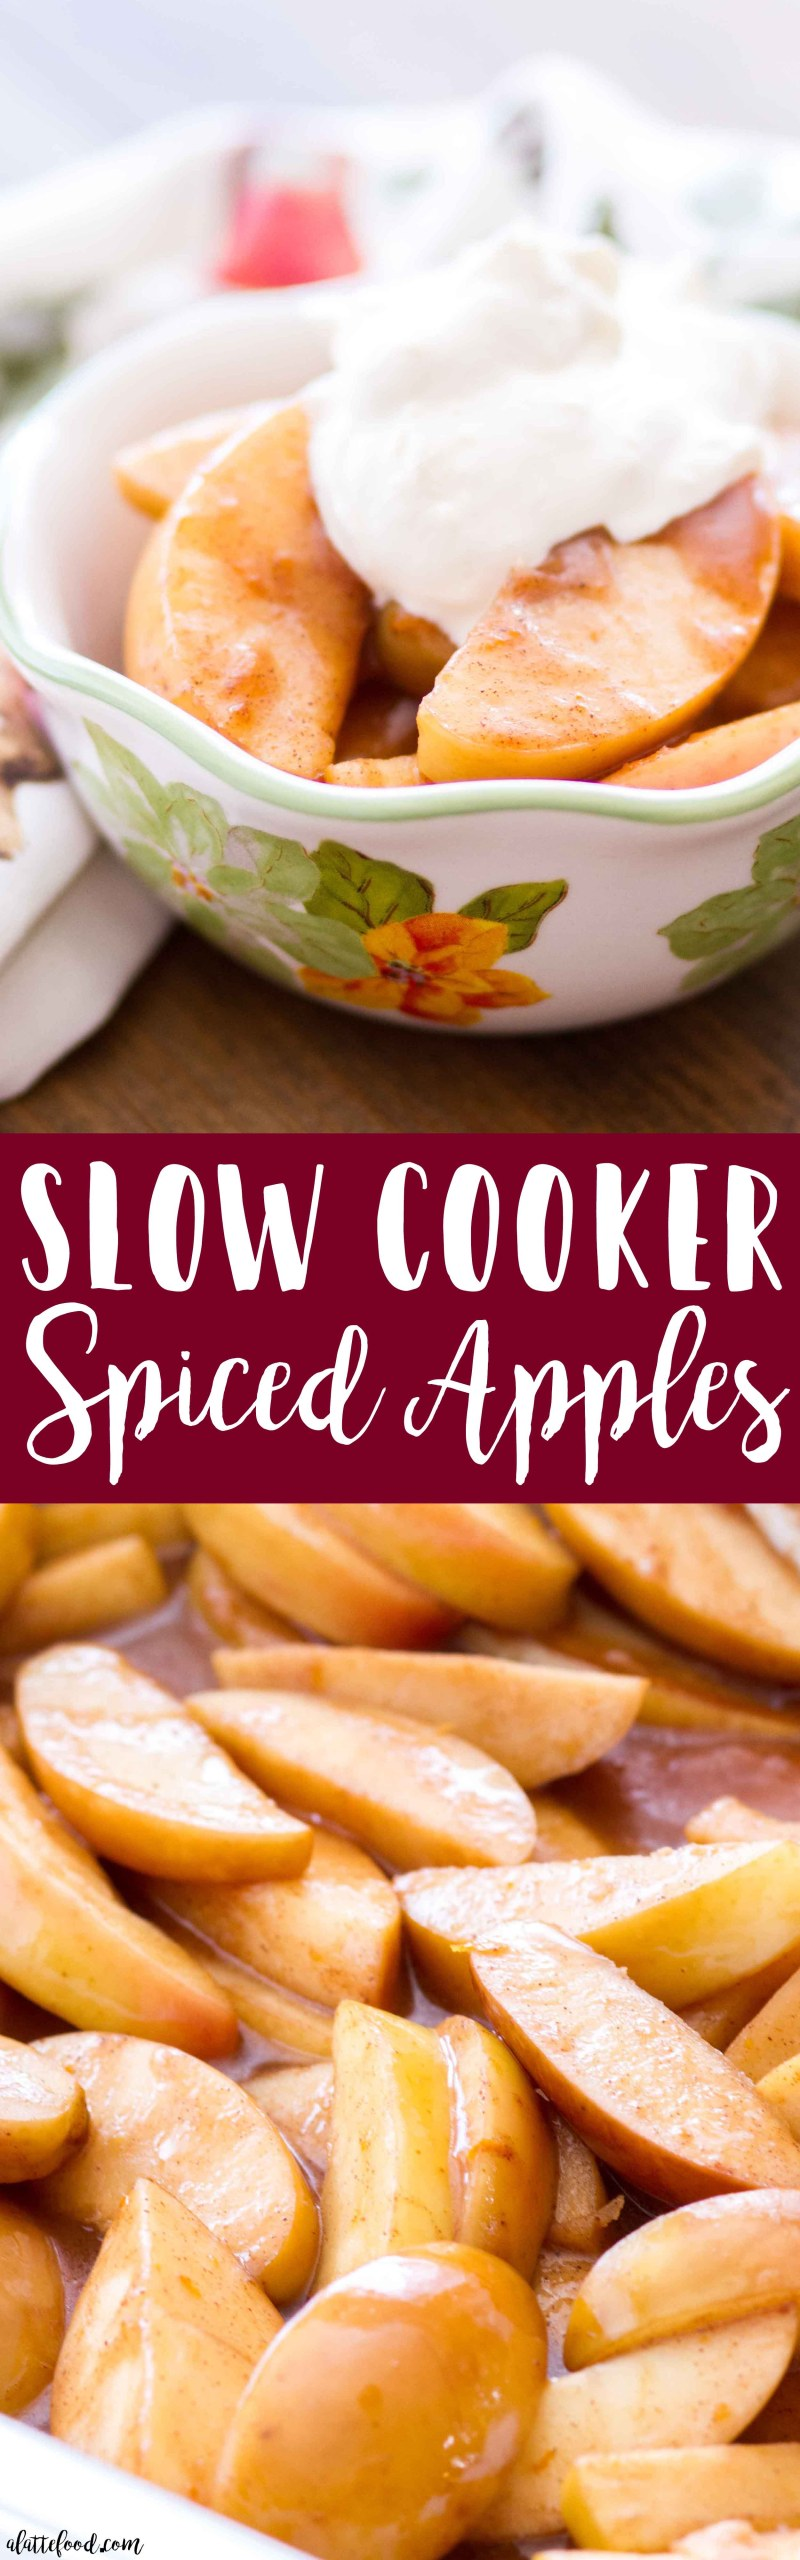 Slow Cooker Spiced Apples Recipe -- These sweet slow cooker spiced apples taste just like homemade apple pie filling! These apples are cooked with maple syrup, apple pie spice, orange zest, apple cider (or apple juice), butter, and bit of corn starch (to thicken the juices), making a sweet holiday dessert that is so easy! Top with ice cream, caramel sauce, or whipped cream for an even more decadent easy Thanksgiving dessert or Christmas dessert! Plus, a step-by-step video below!